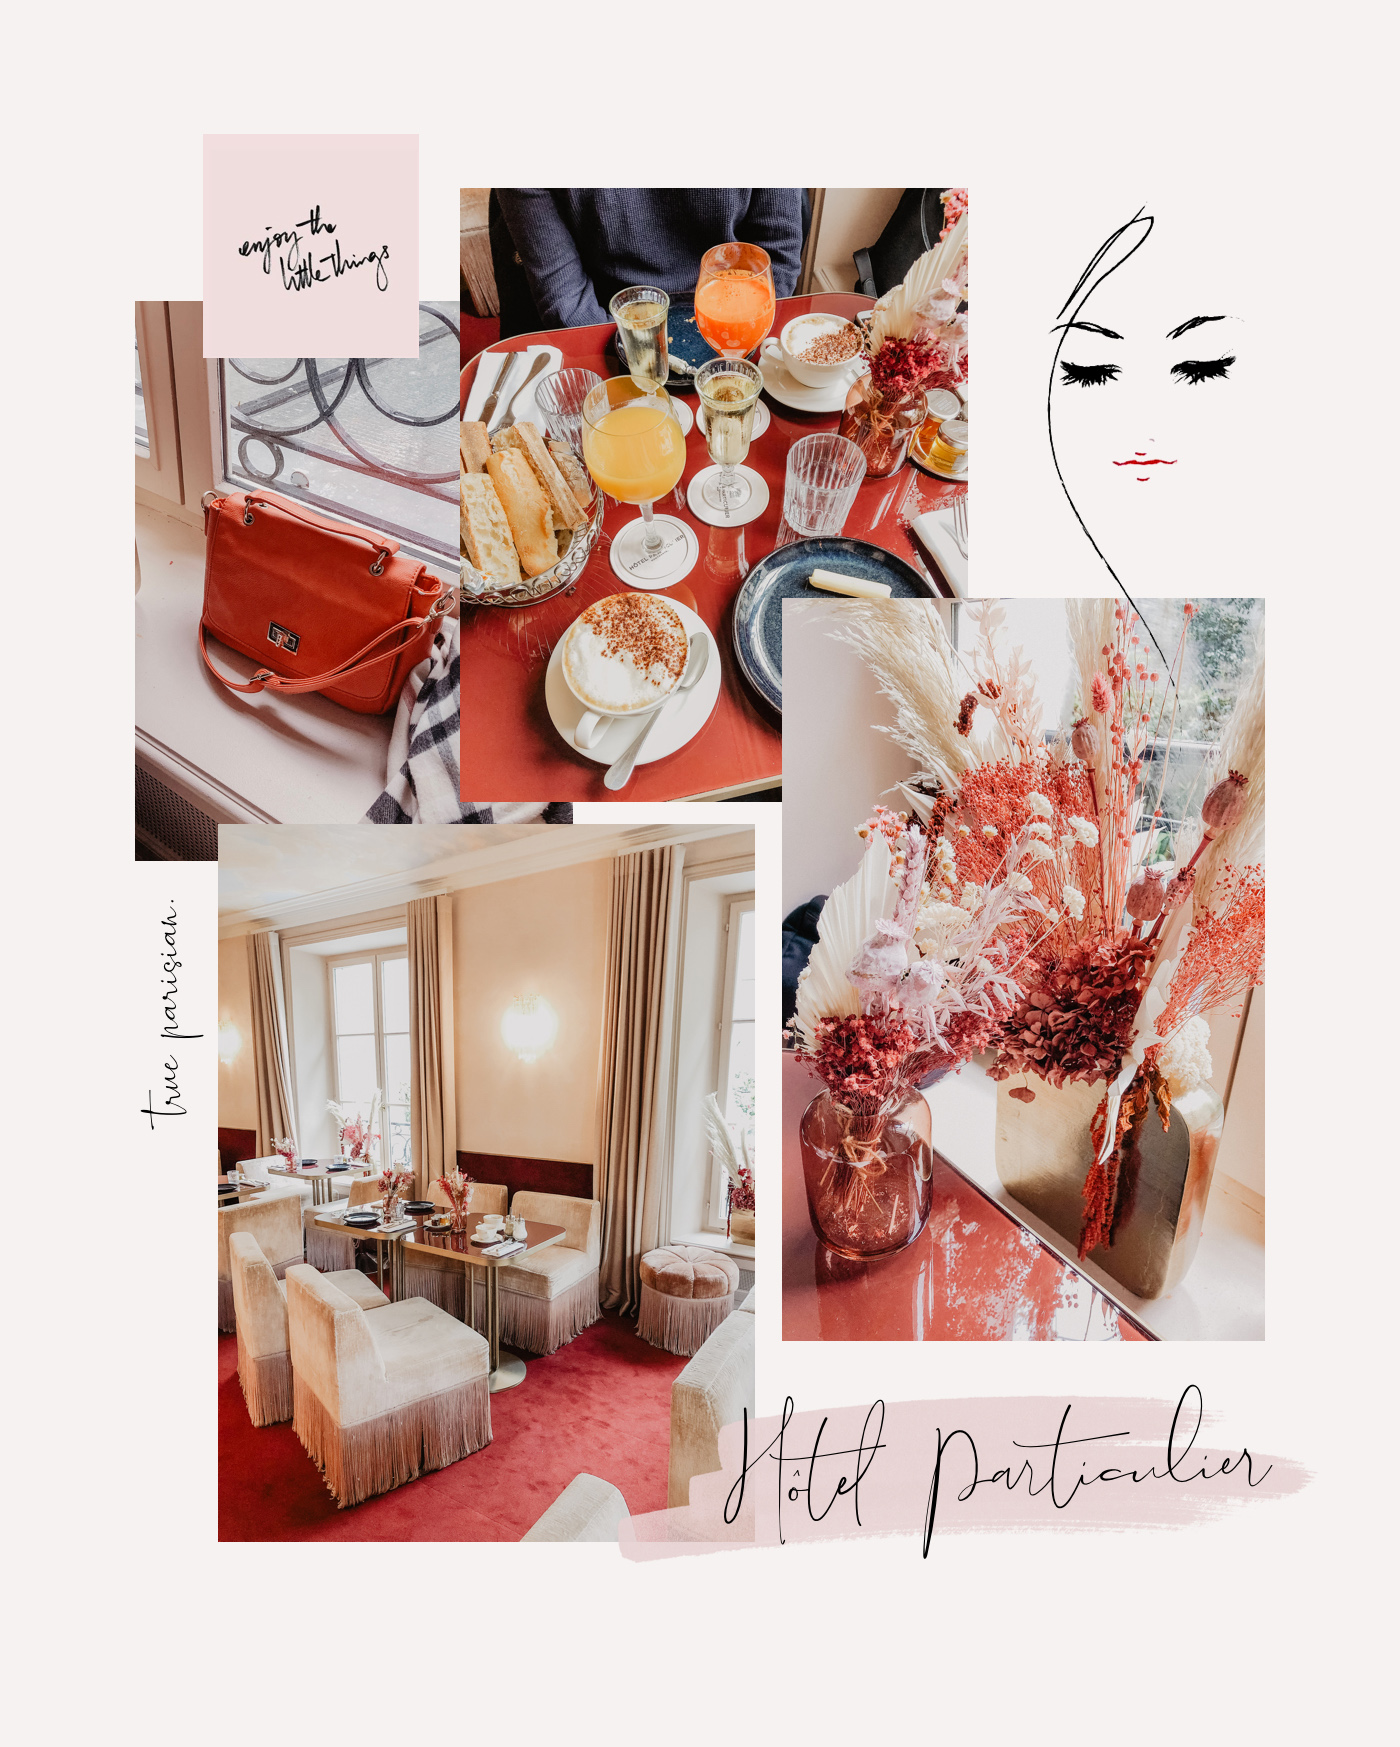 brunch hotel particulier paris cafe vintage